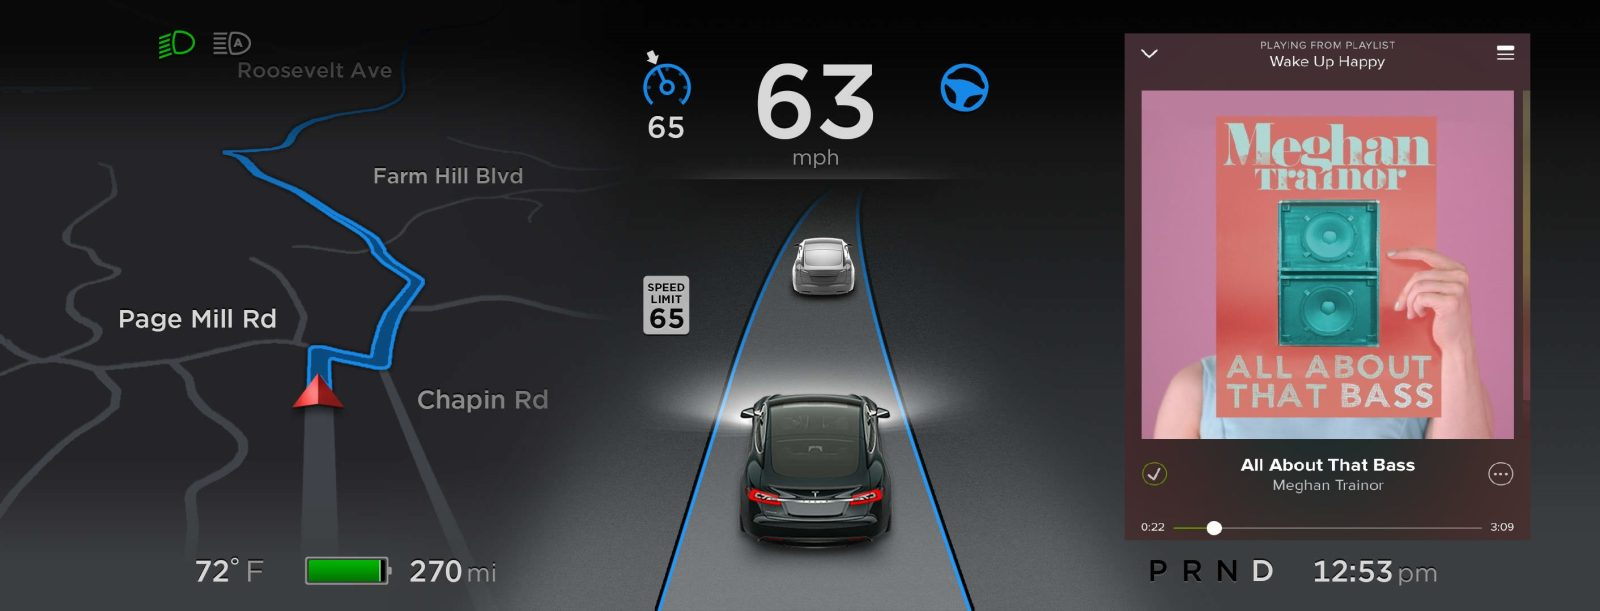 Elon Musk finally confirms Tesla cars are getting Spotify, but when?